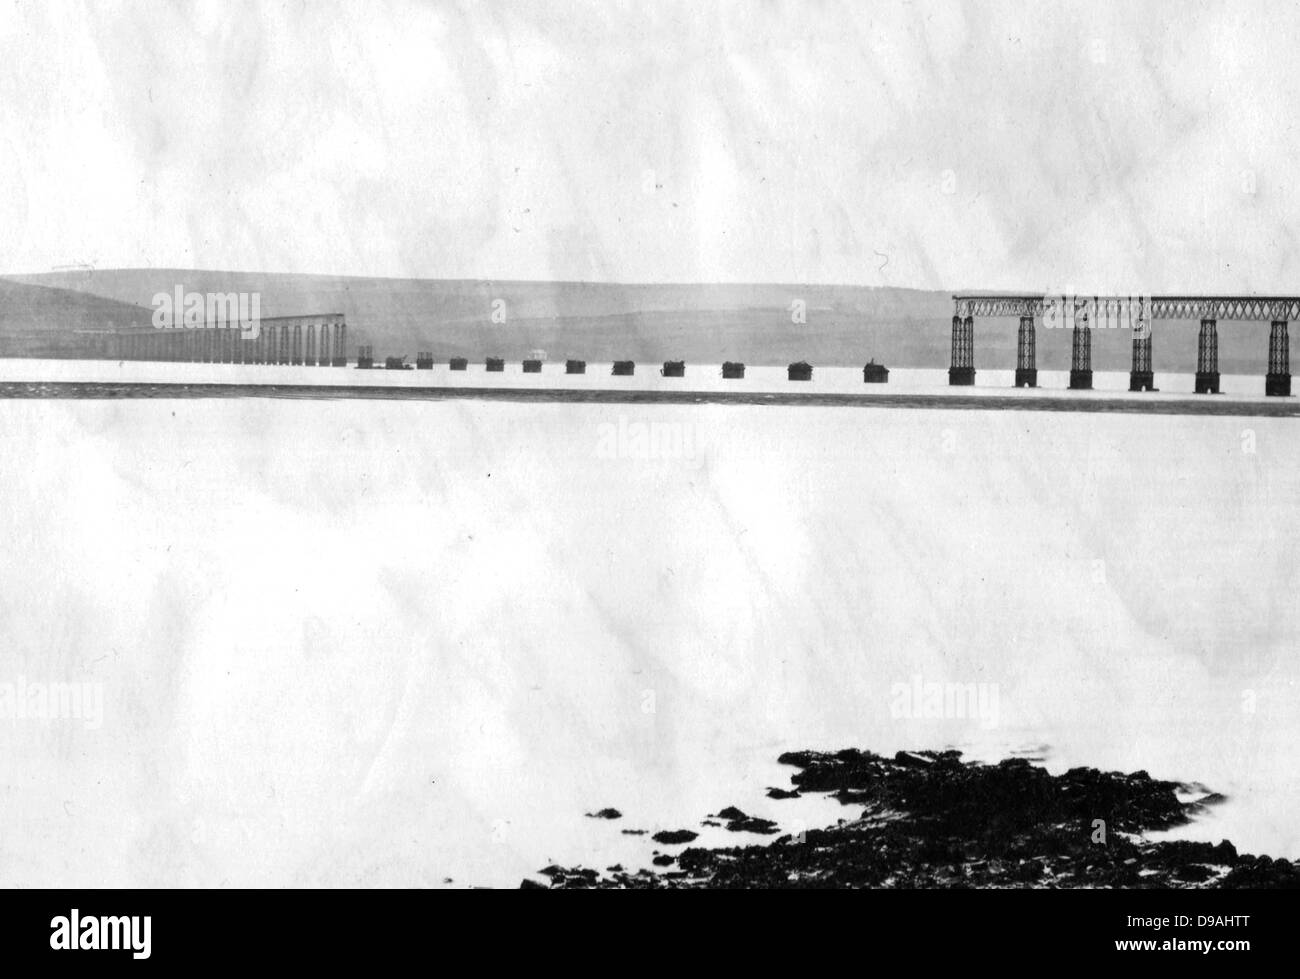 Original Tay Bridge after the collapse, Scotland - Stock Image